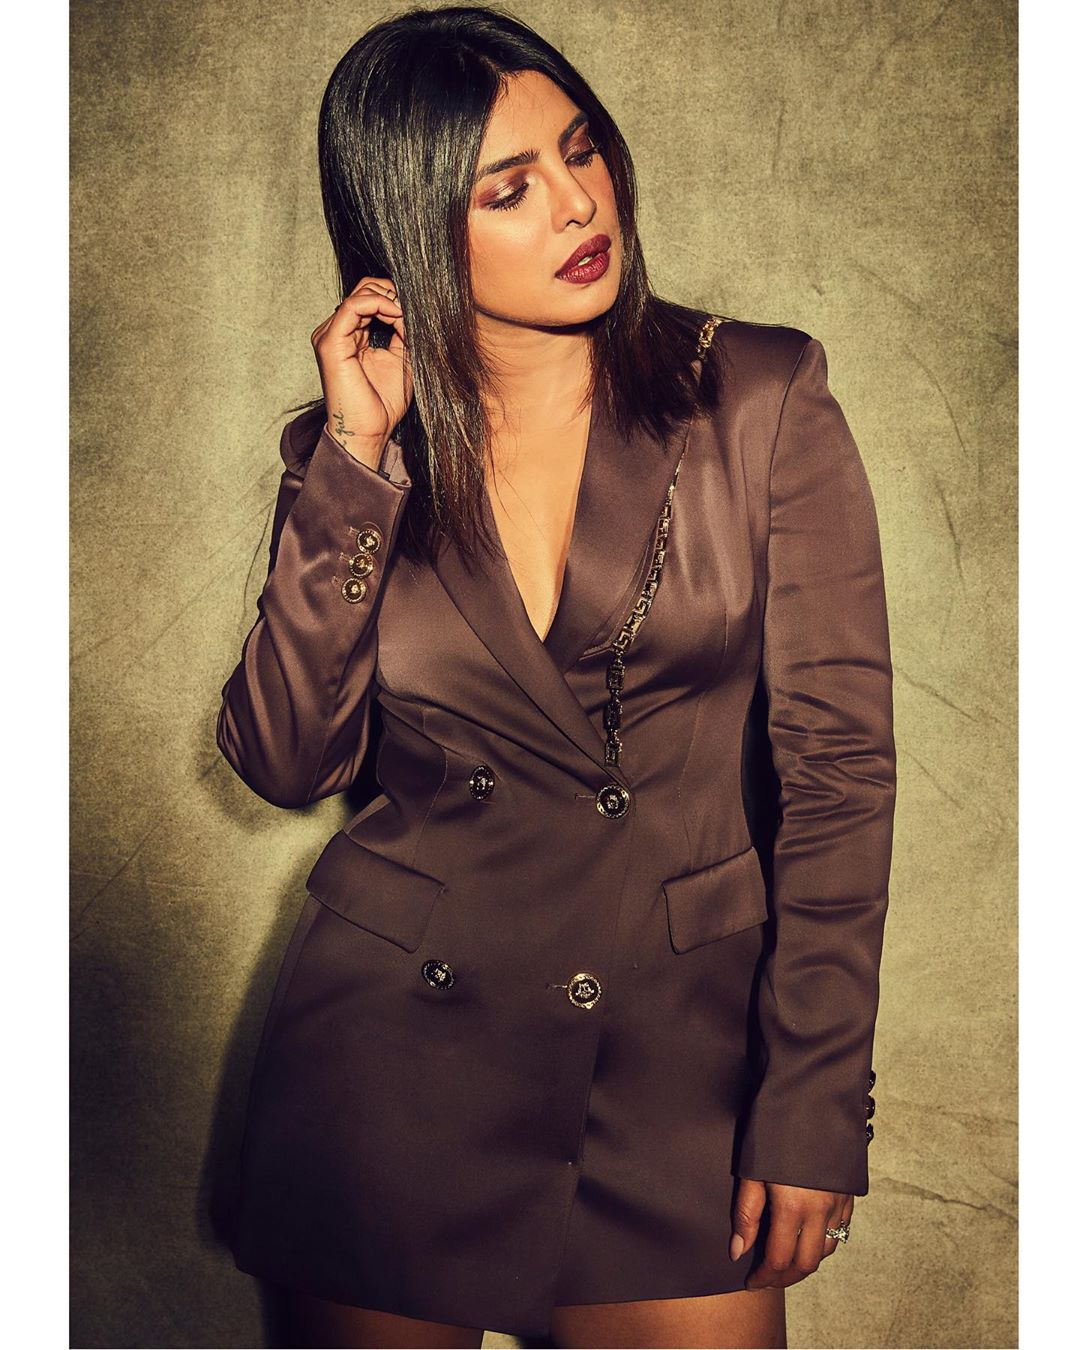 Priyanka Chopra  Suited up…  promotions. In theatres Oct 11. Wallpaper